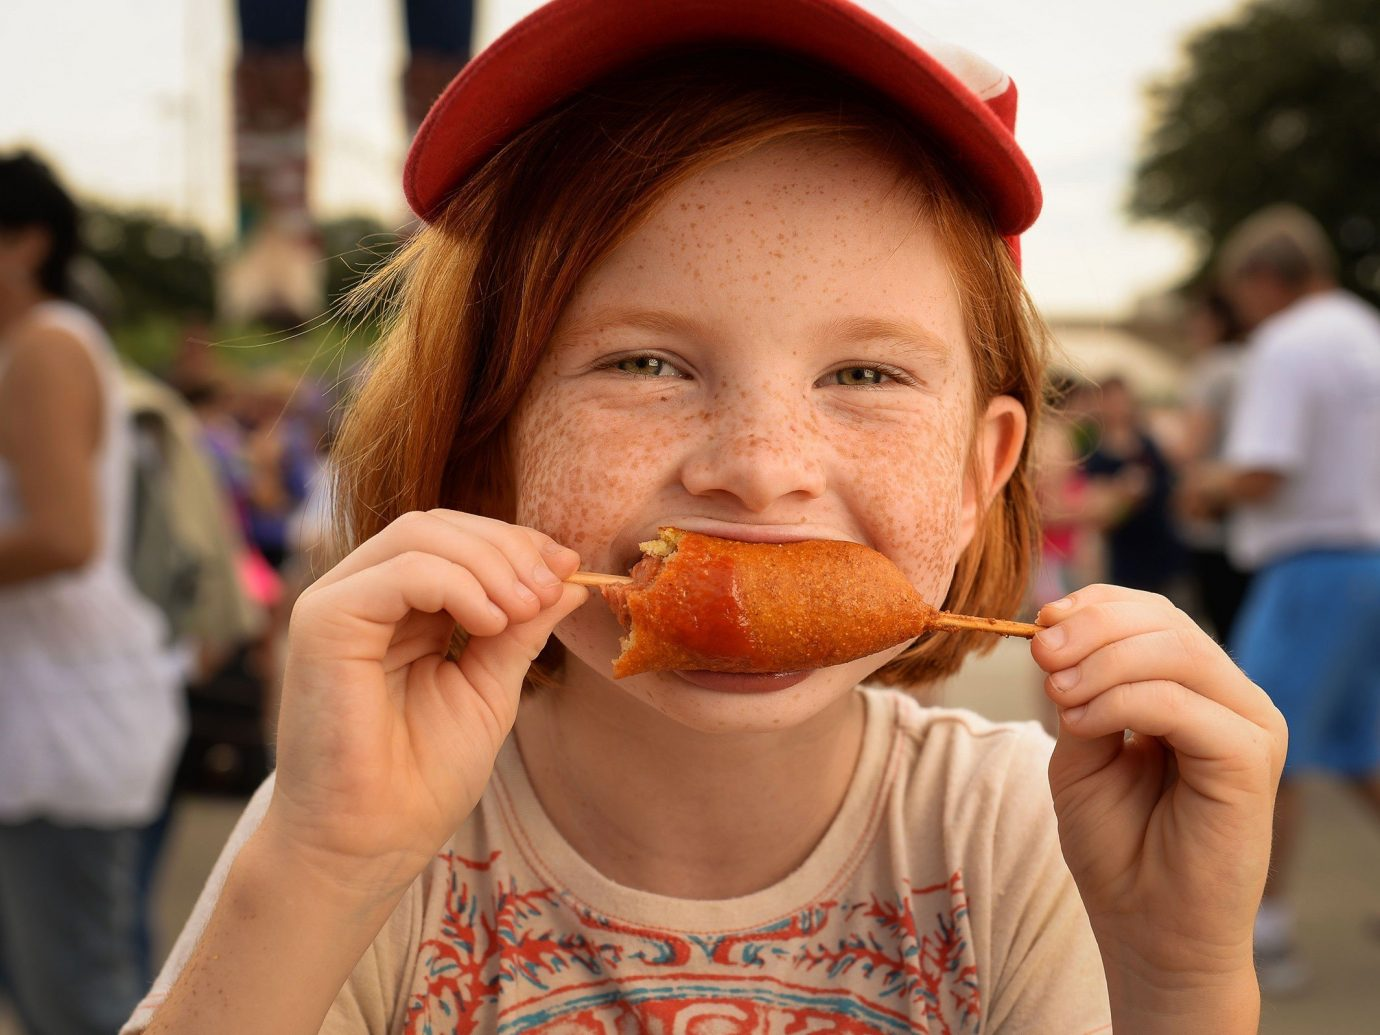 Offbeat person outdoor color human action food facial expression eating people fun smile male child snack food sandwich festival dessert